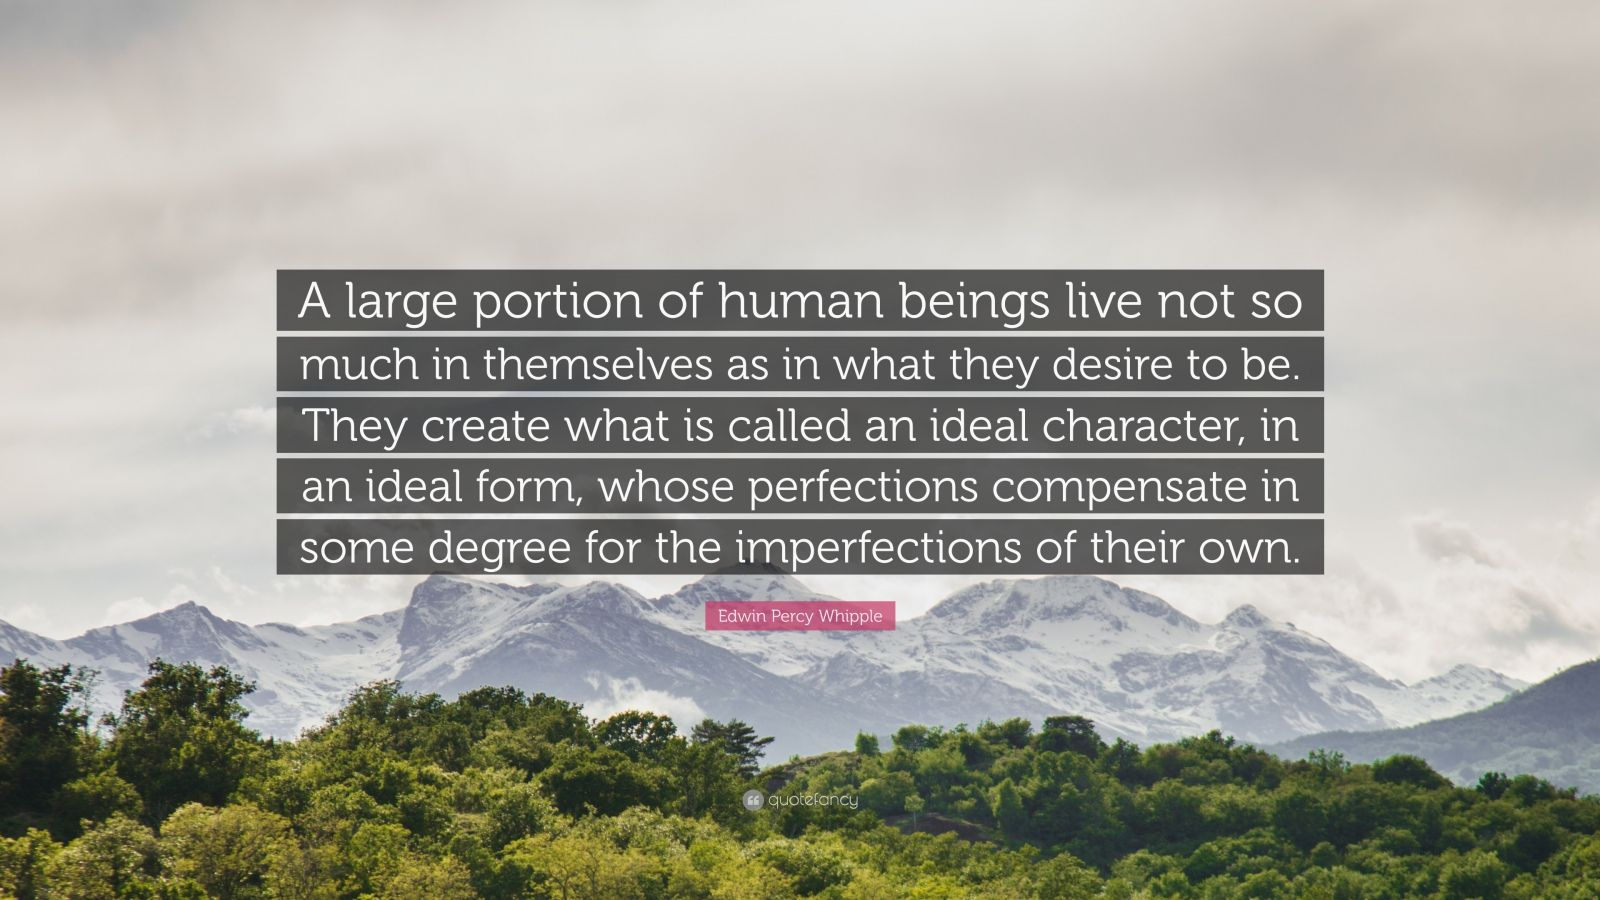 """Edwin Percy Whipple Quote: """"A large portion of human beings live not so much in themselves as in what they desire to be. They create what is called an ideal character, in an ideal form, whose perfections compensate in some degree for the imperfections of their own."""""""